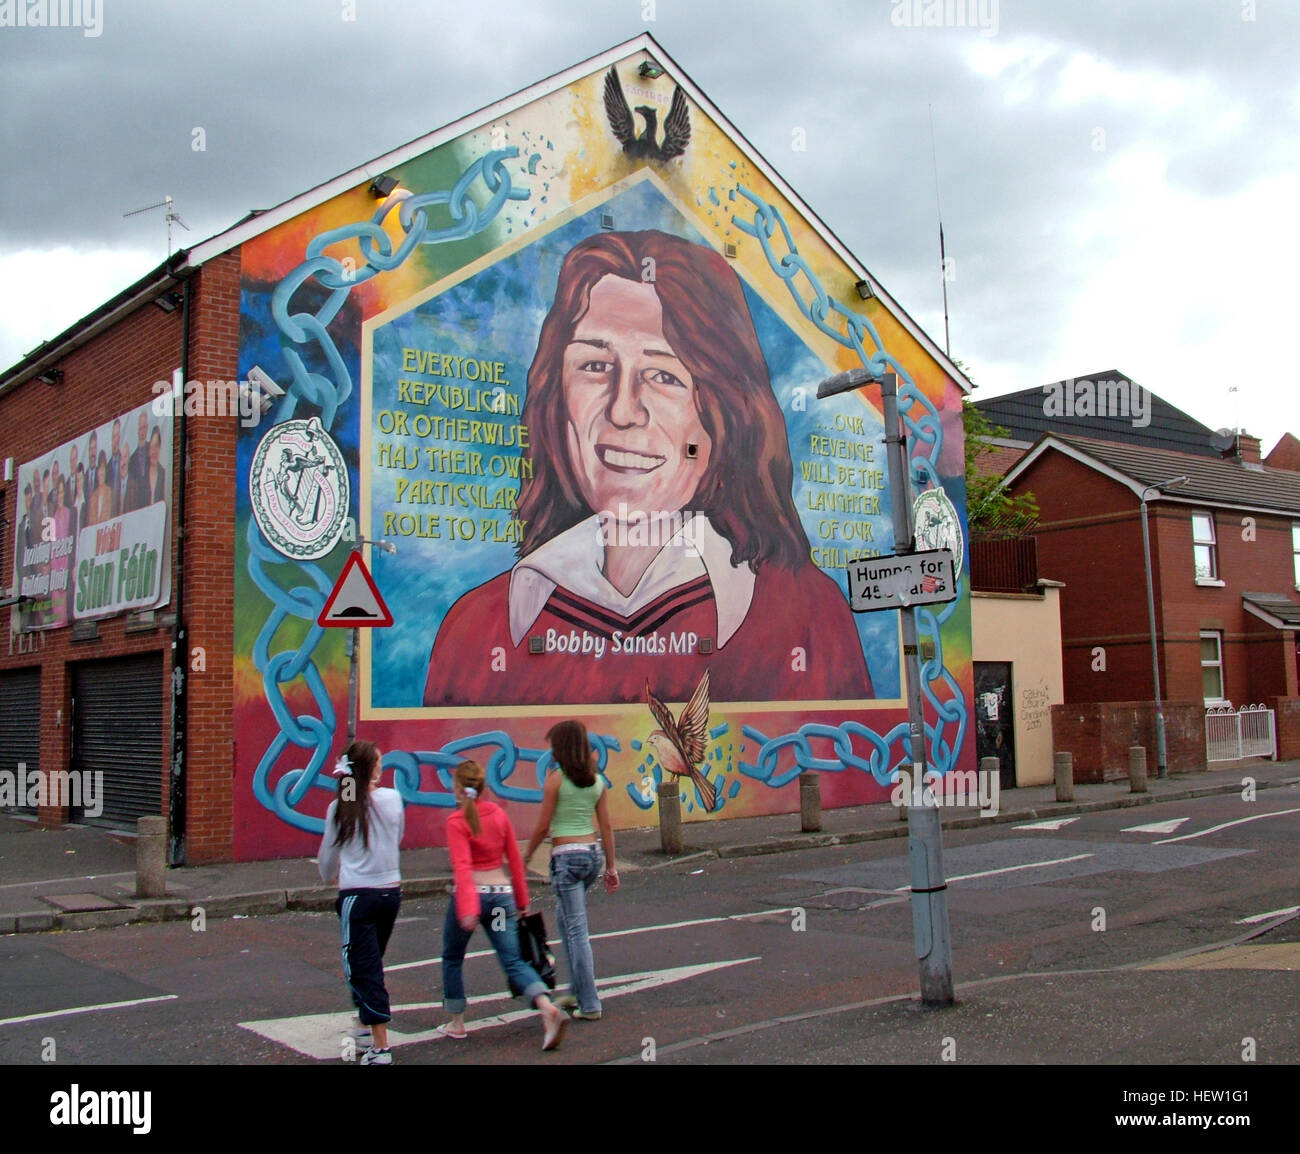 Belfast falls rd republican mural bobby sands mp sinn for Bobby sands mural